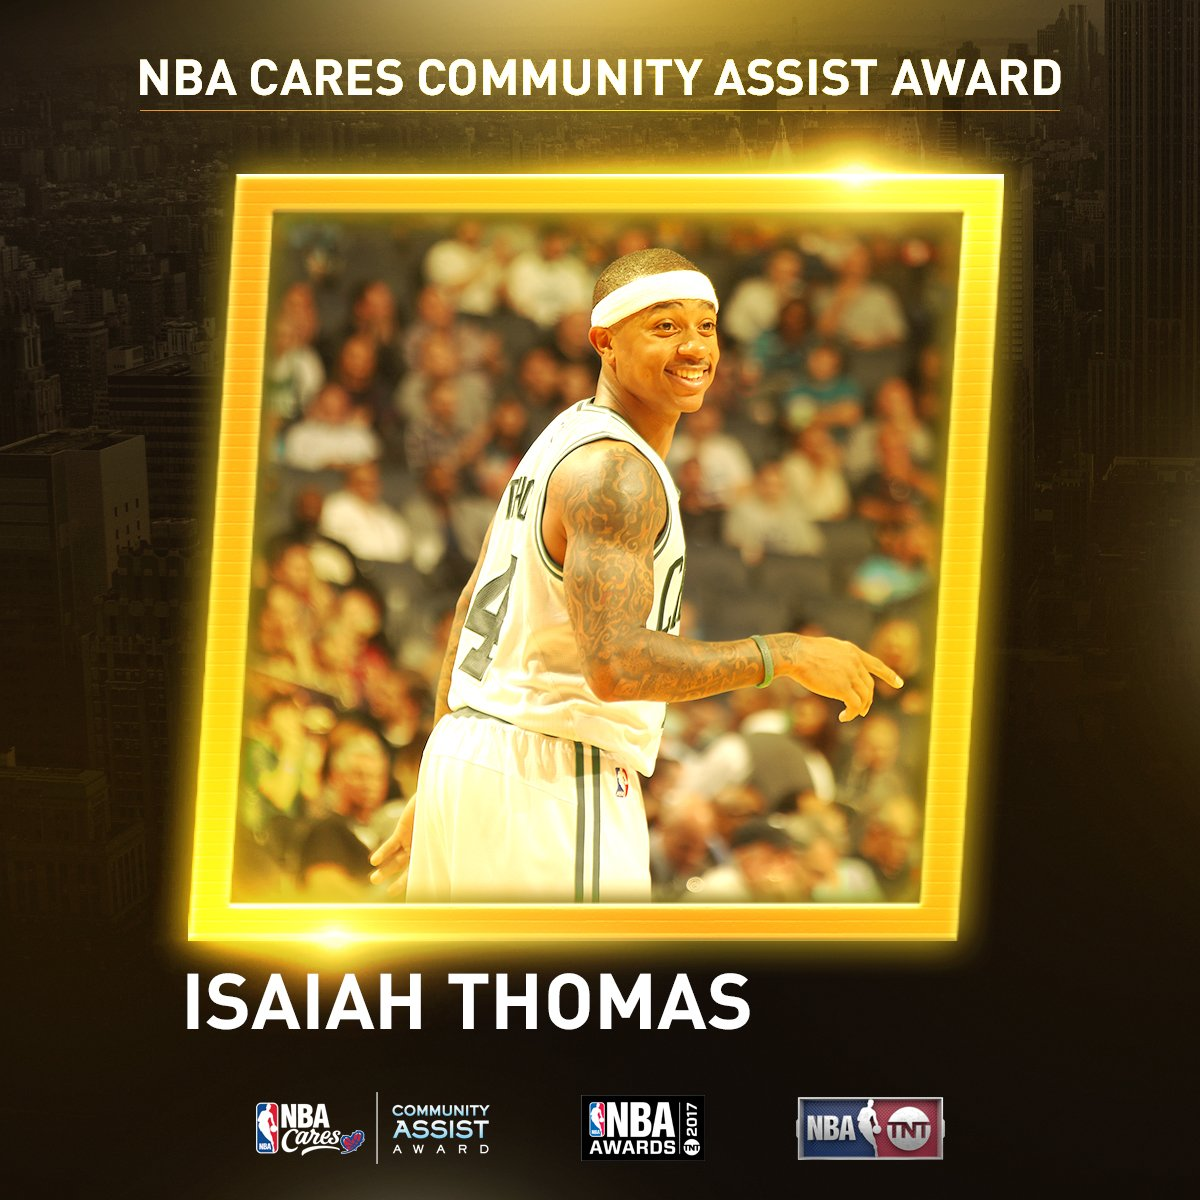 NBA Cares Community Assist Award Isaiah Thomas